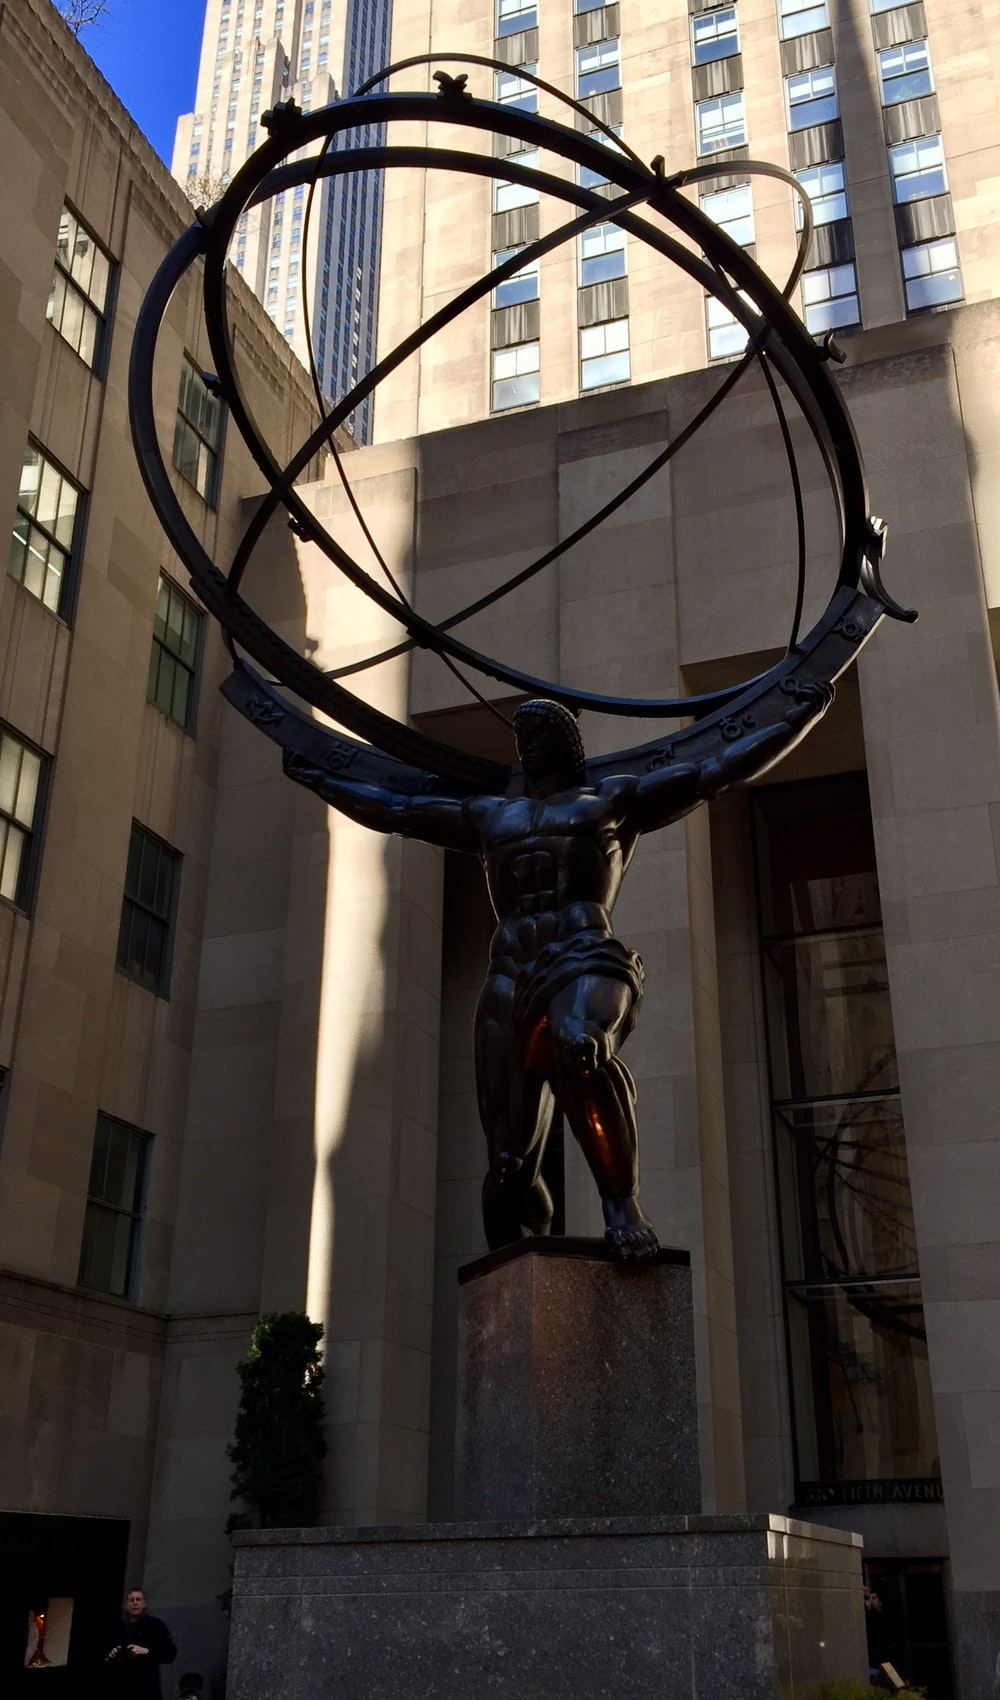 man holding globe statue near building at daytime